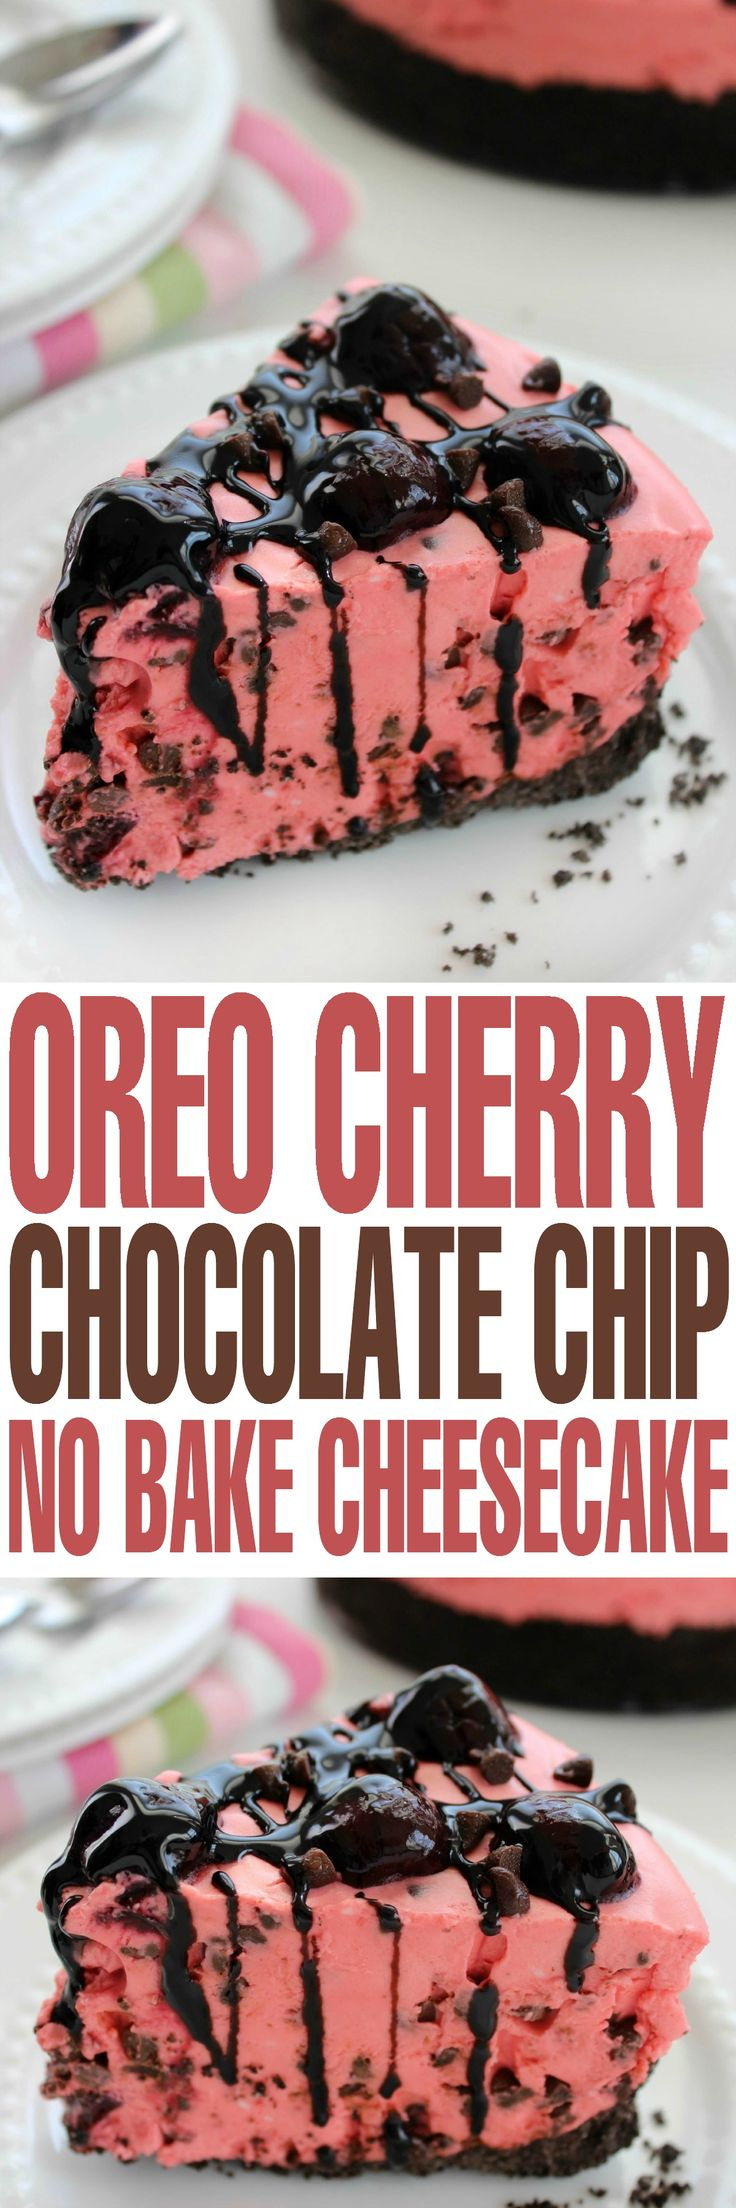 This Oreo Cherry Chocolate Chip No Bake Cheesecake is a decadent dessert recipe that is actually super easy to whip up.